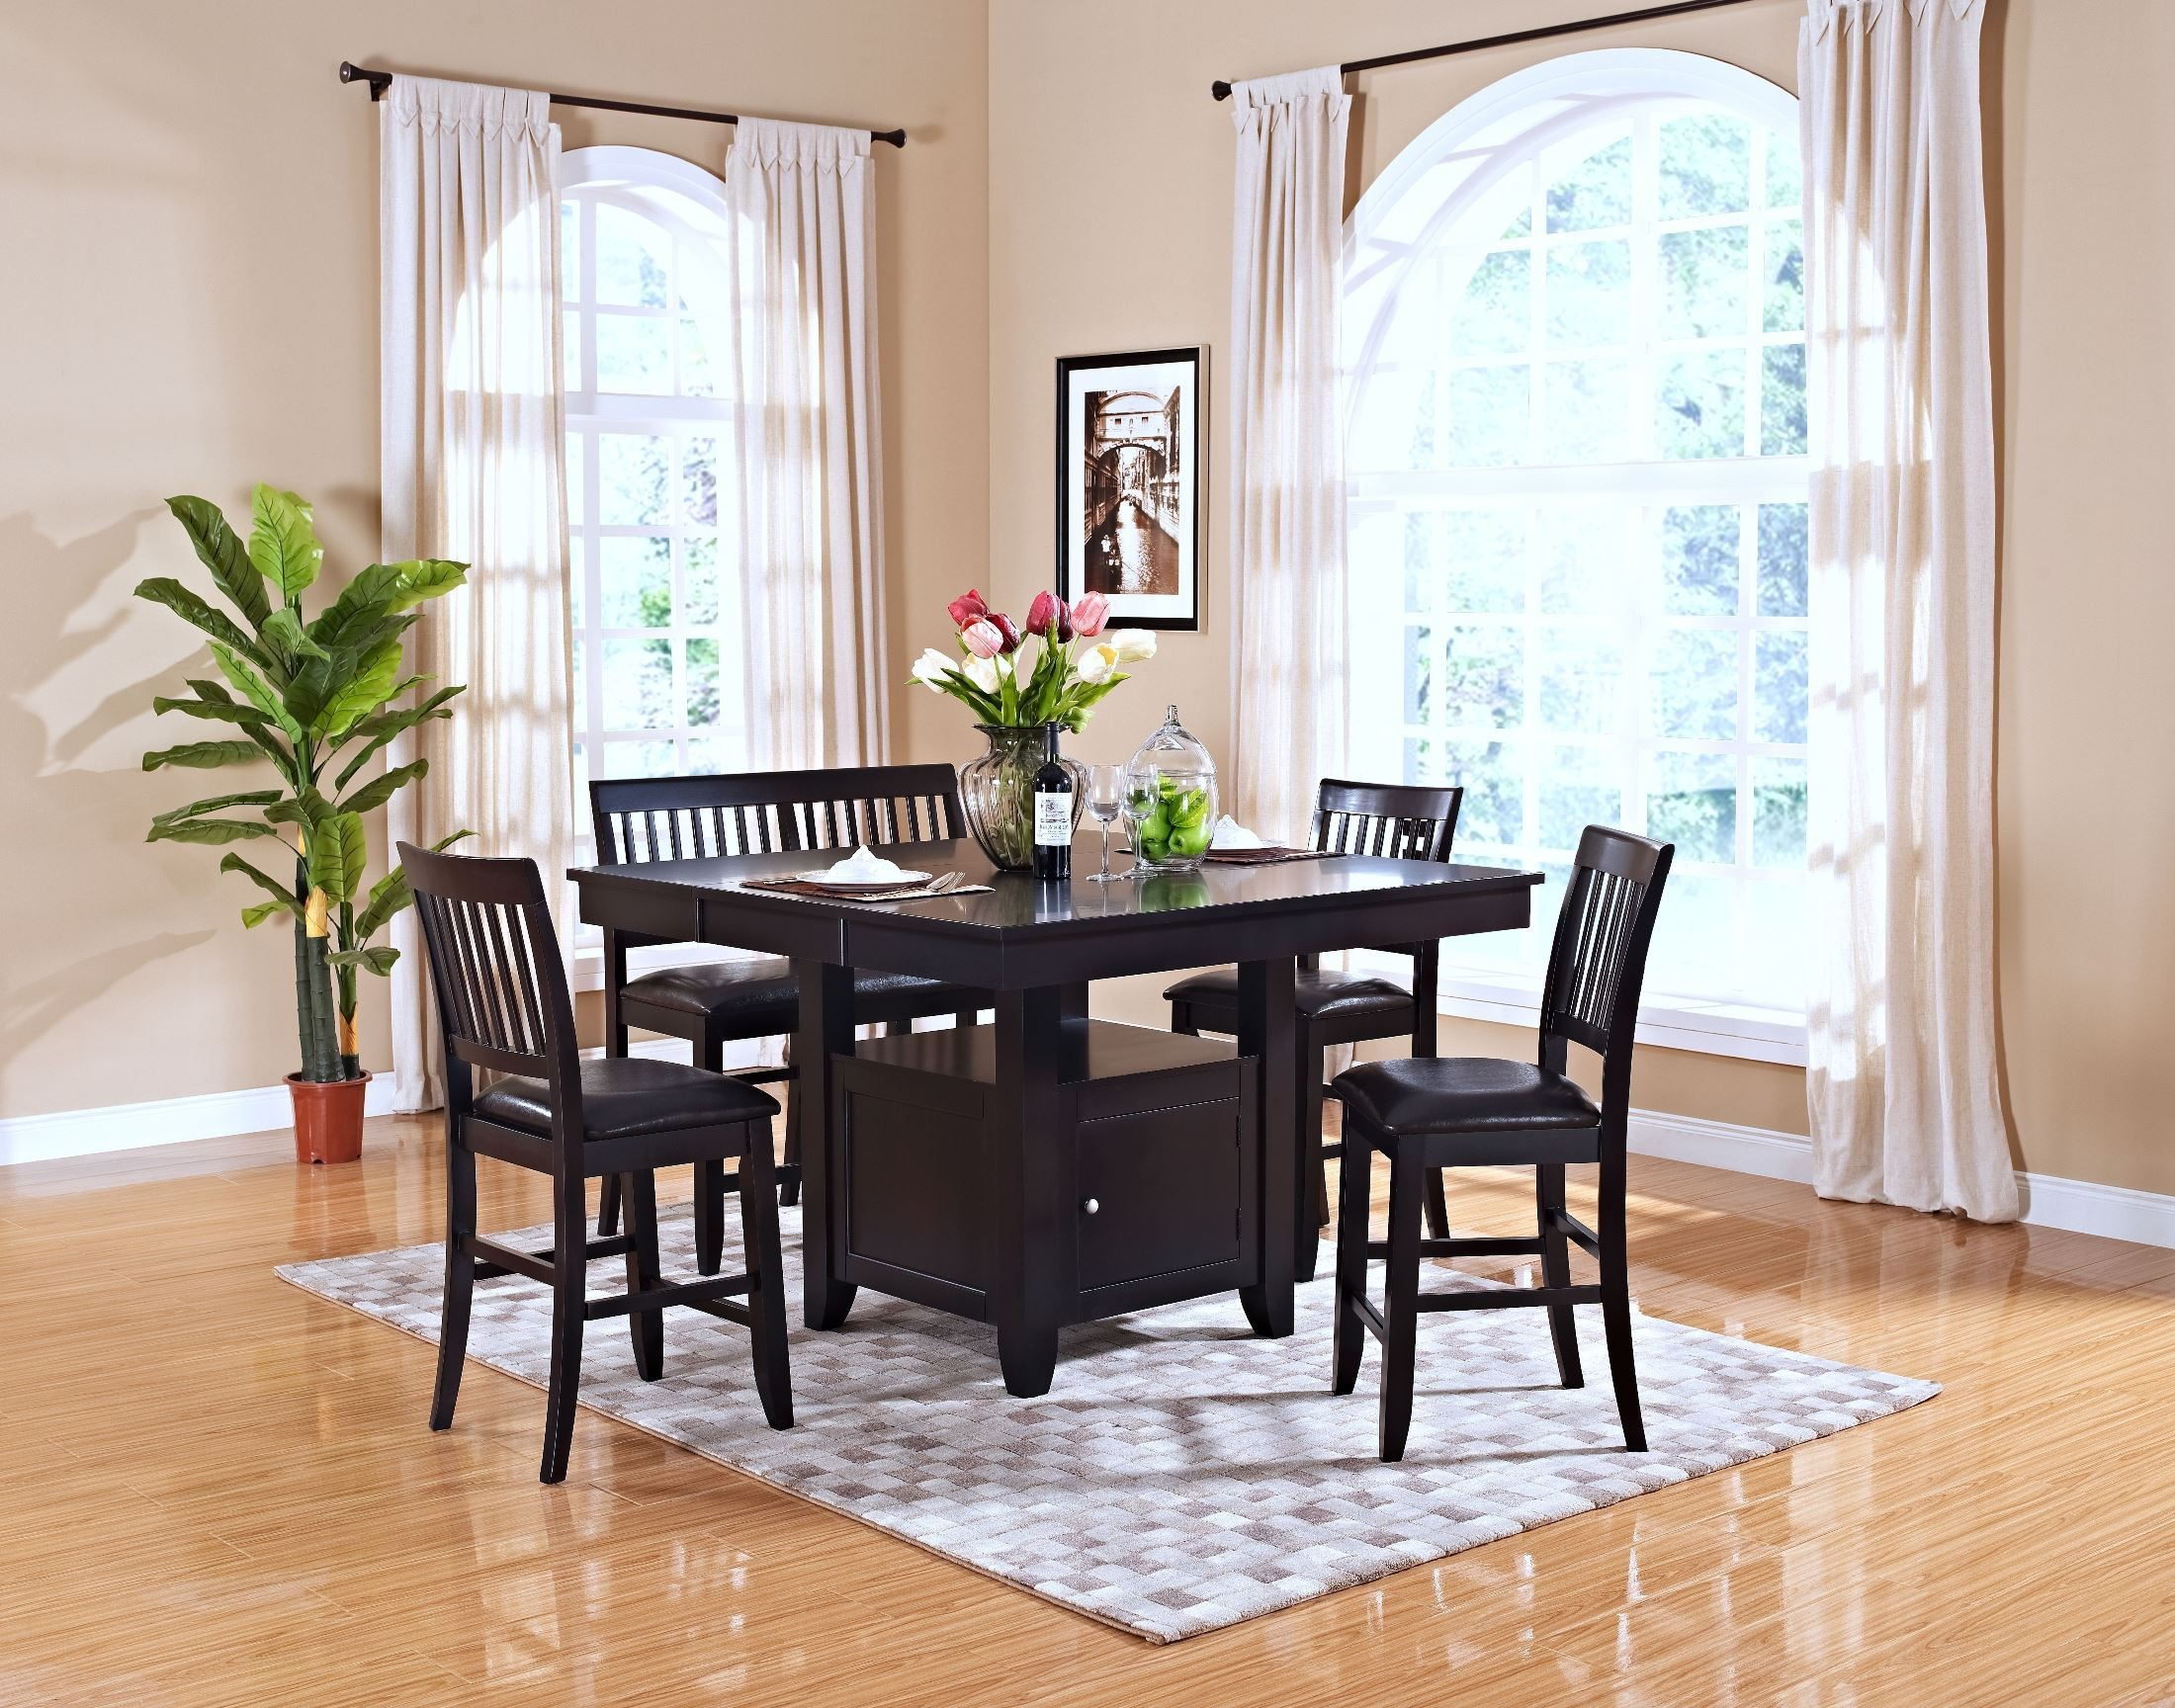 Kaylee Espresso Counter Height Storage Dining Room Set  : 40 1021 from colemanfurniture.com size 2200 x 1728 jpeg 816kB